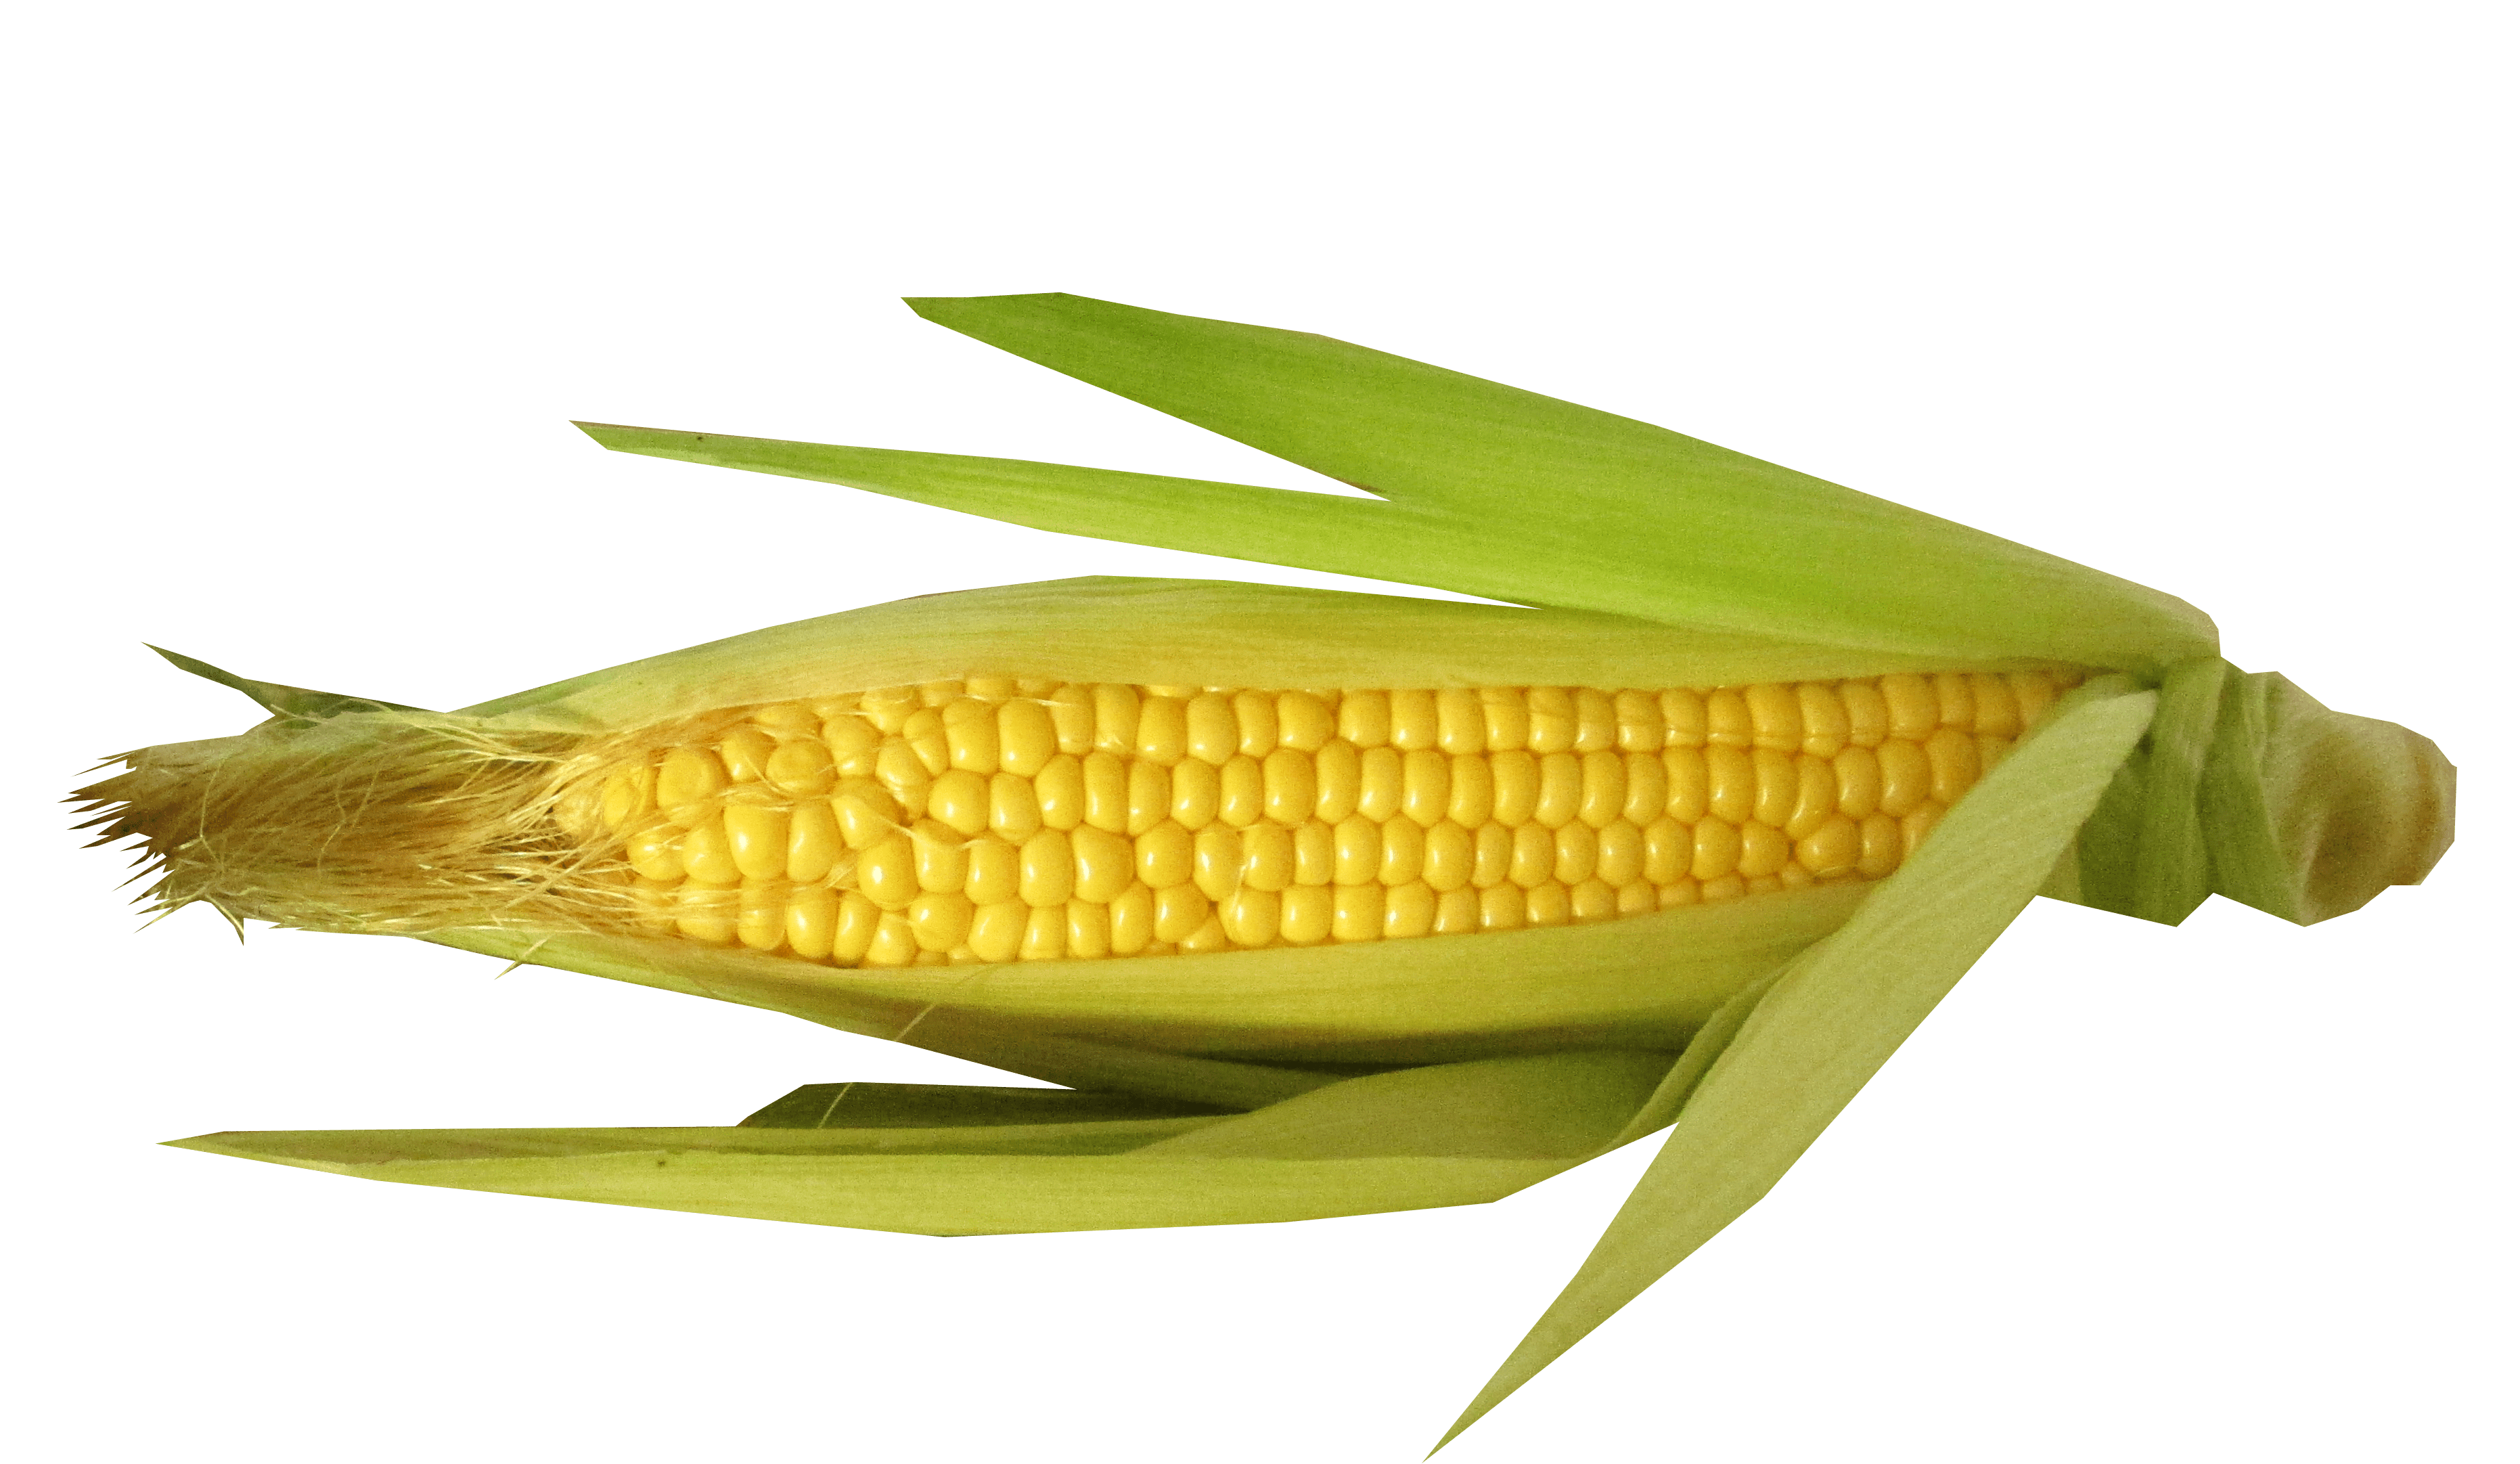 Samsung Galaxy A Hd Wallpaper Free Stock Photo Of Corn Cut Out